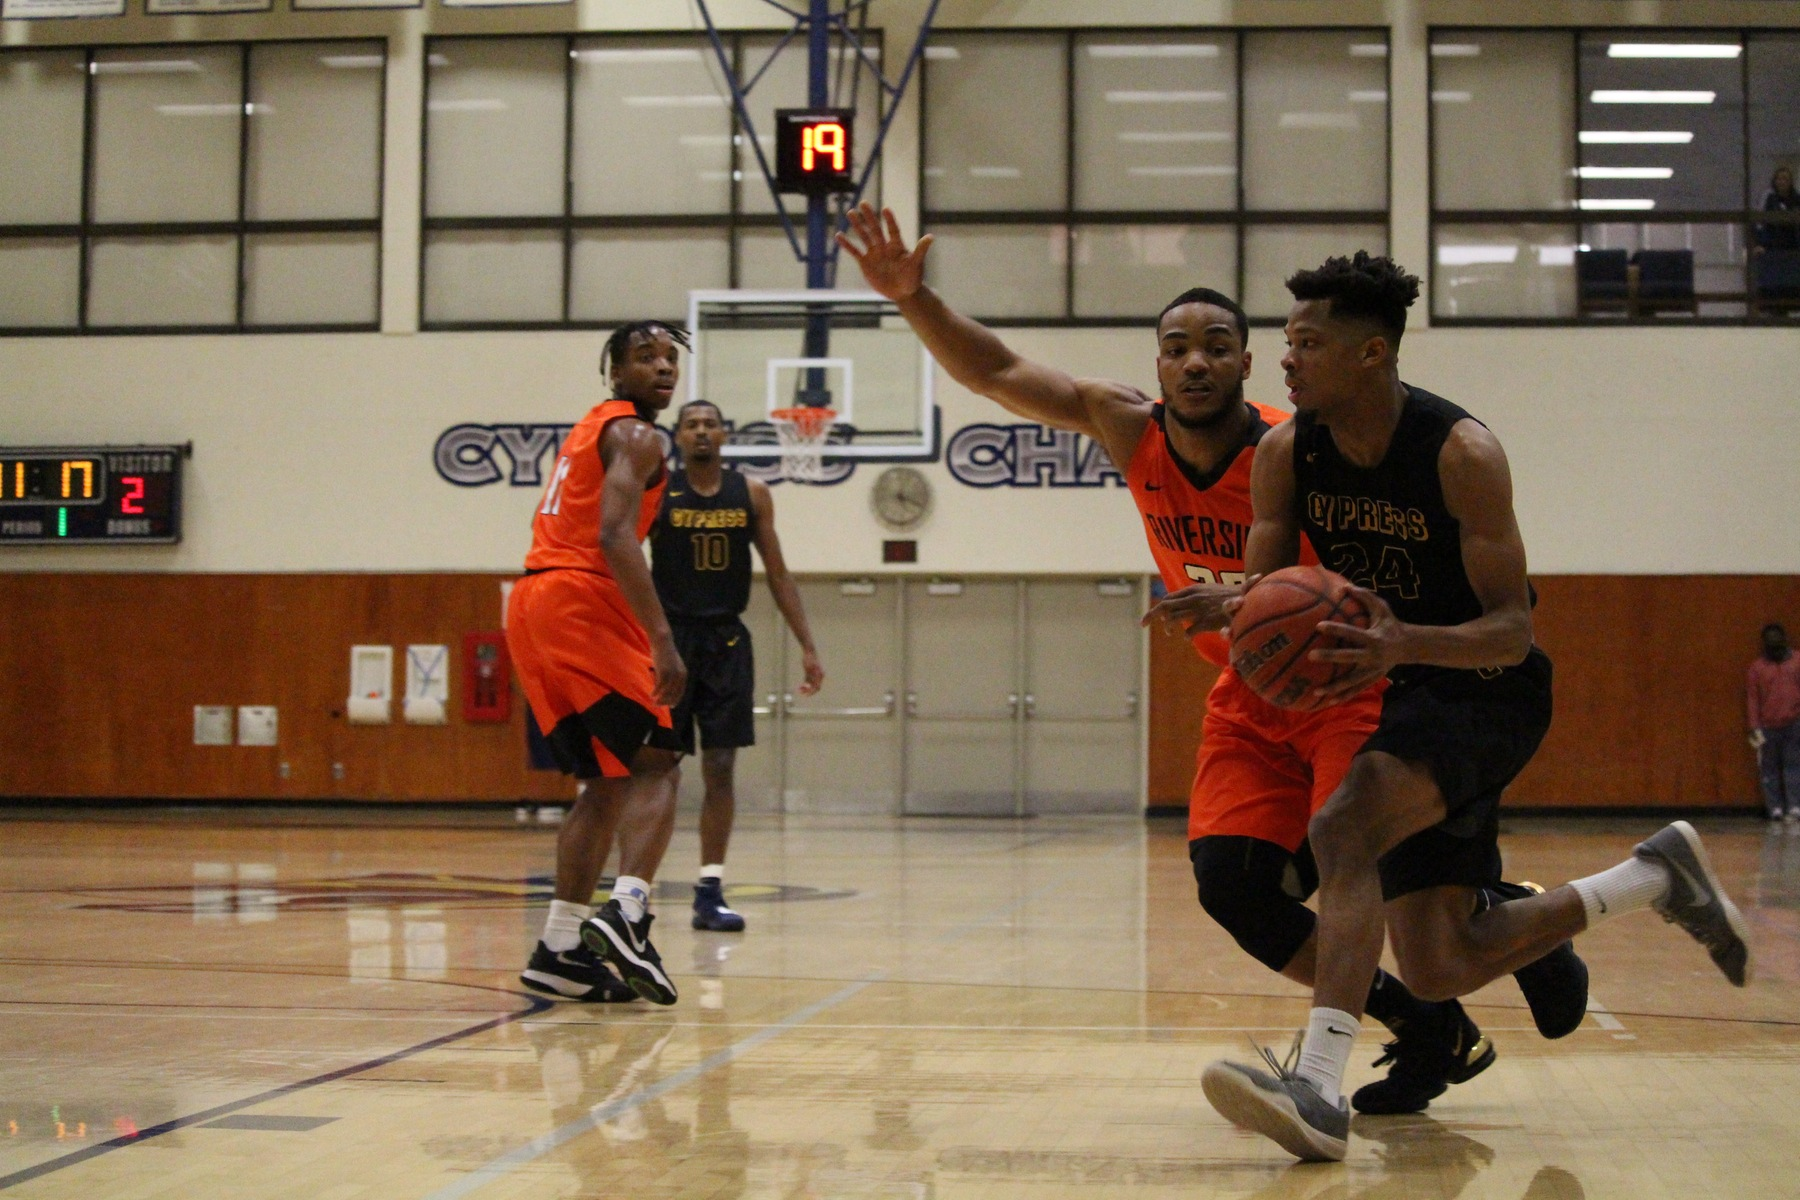 Chargers Close Out Santa Ana at Home, 81-68; Playoff Hopes Alive